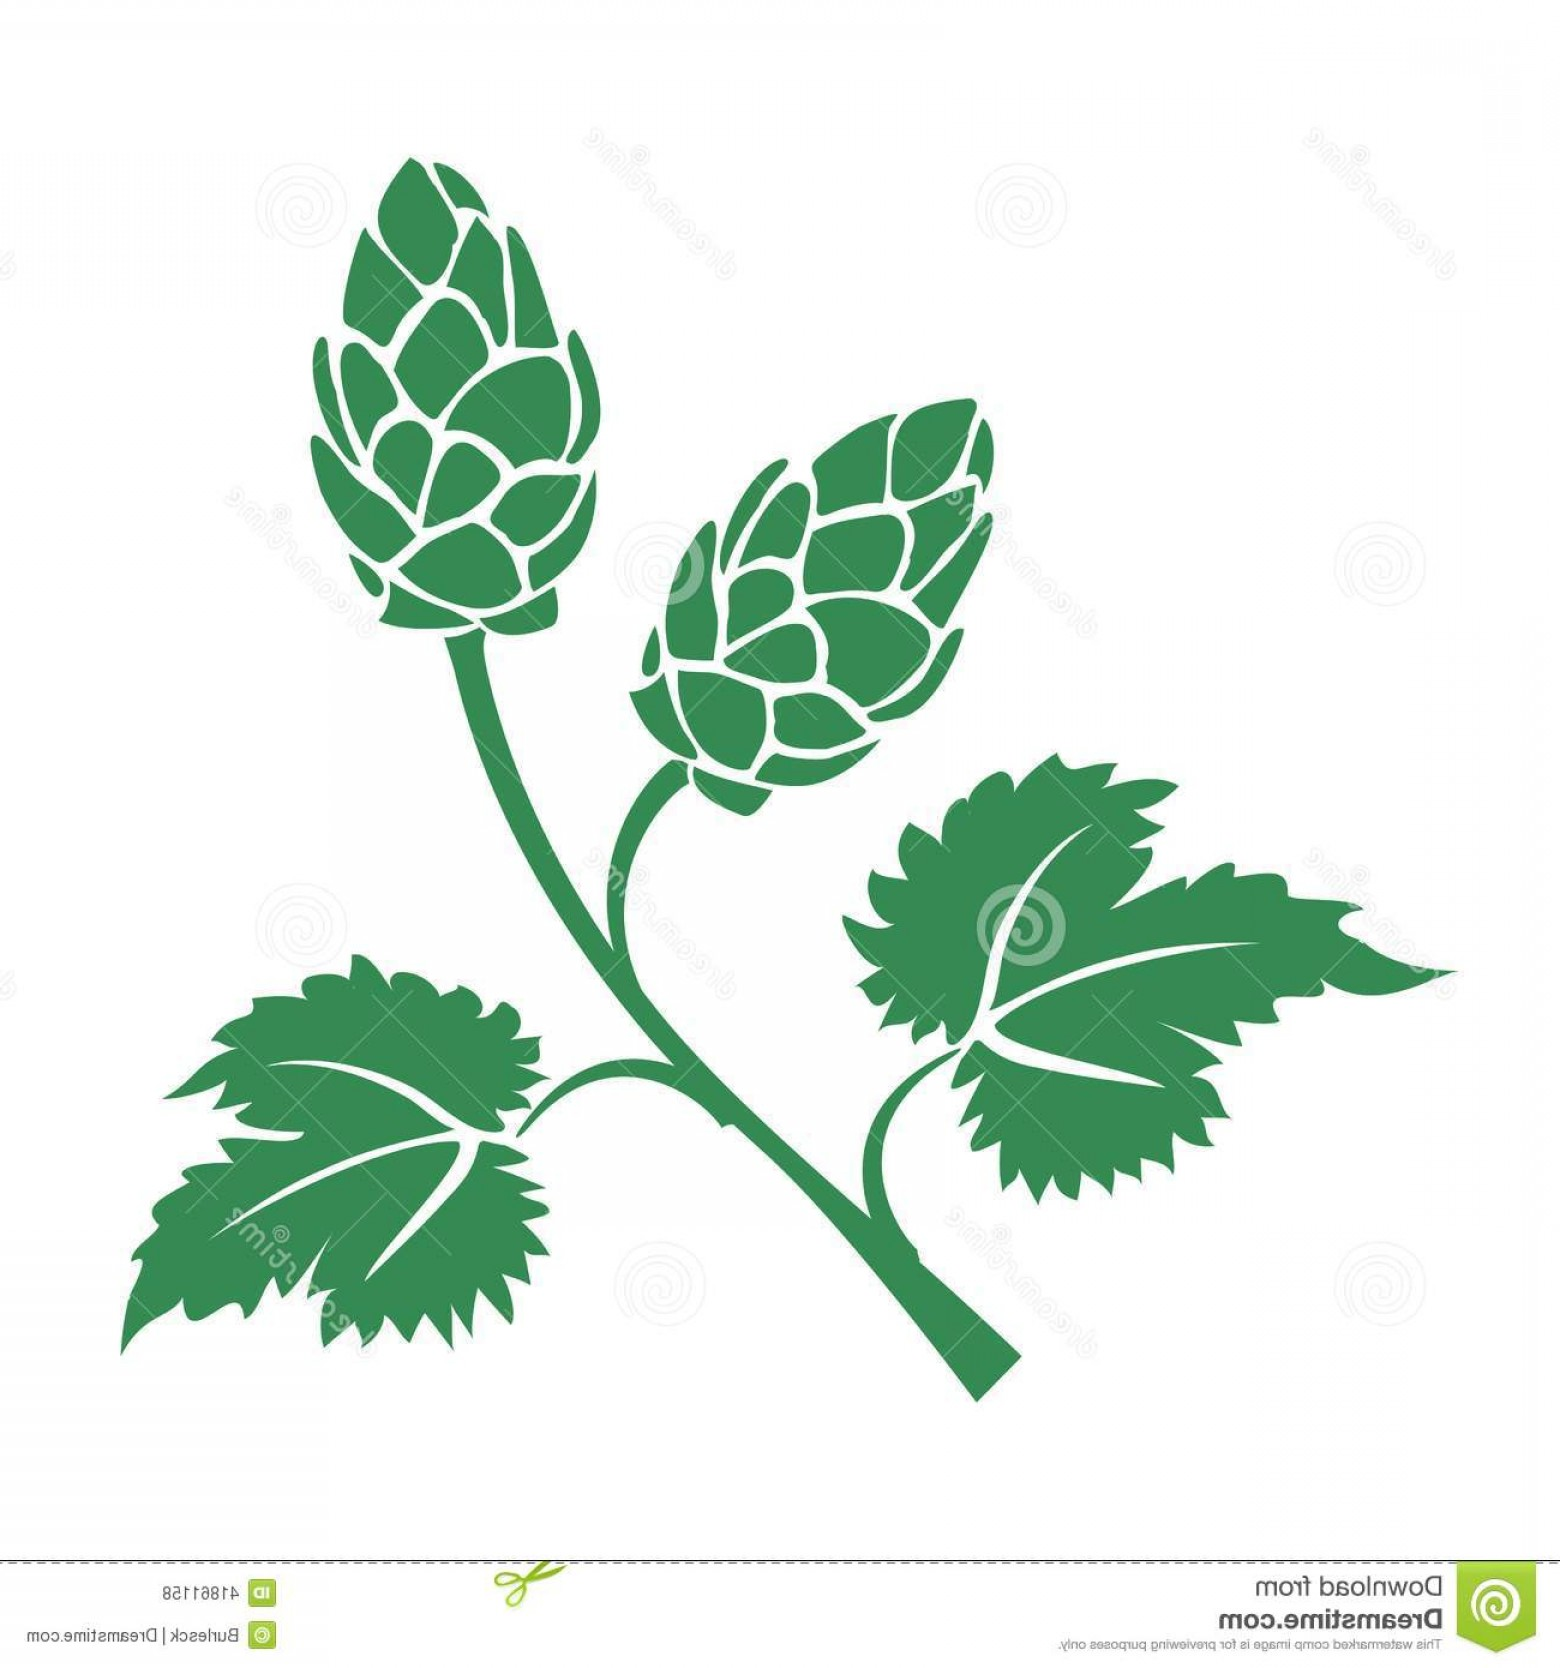 Hops Vector Art: Stock Illustration Green Vector Hops Icon Silhouette Leaves Cone Like Flowers Used Brewing Industry To Add Bitter Taste To Beer Image